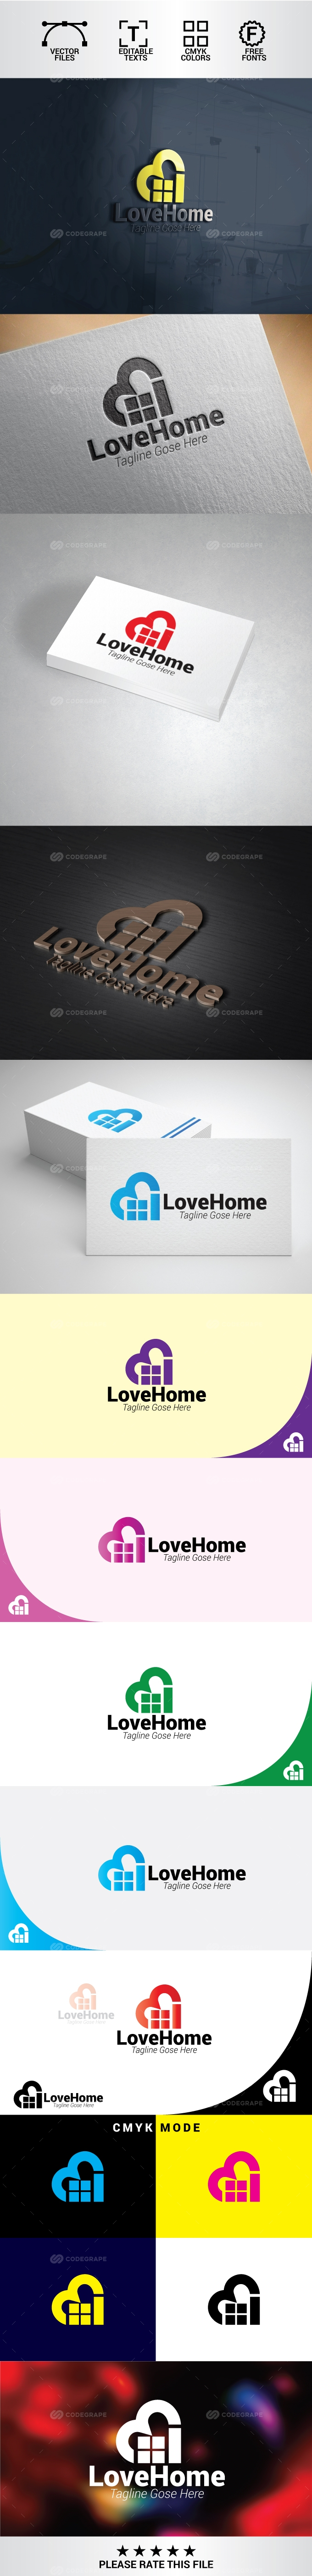 Love Home Logo | Property and Real Estate Logo